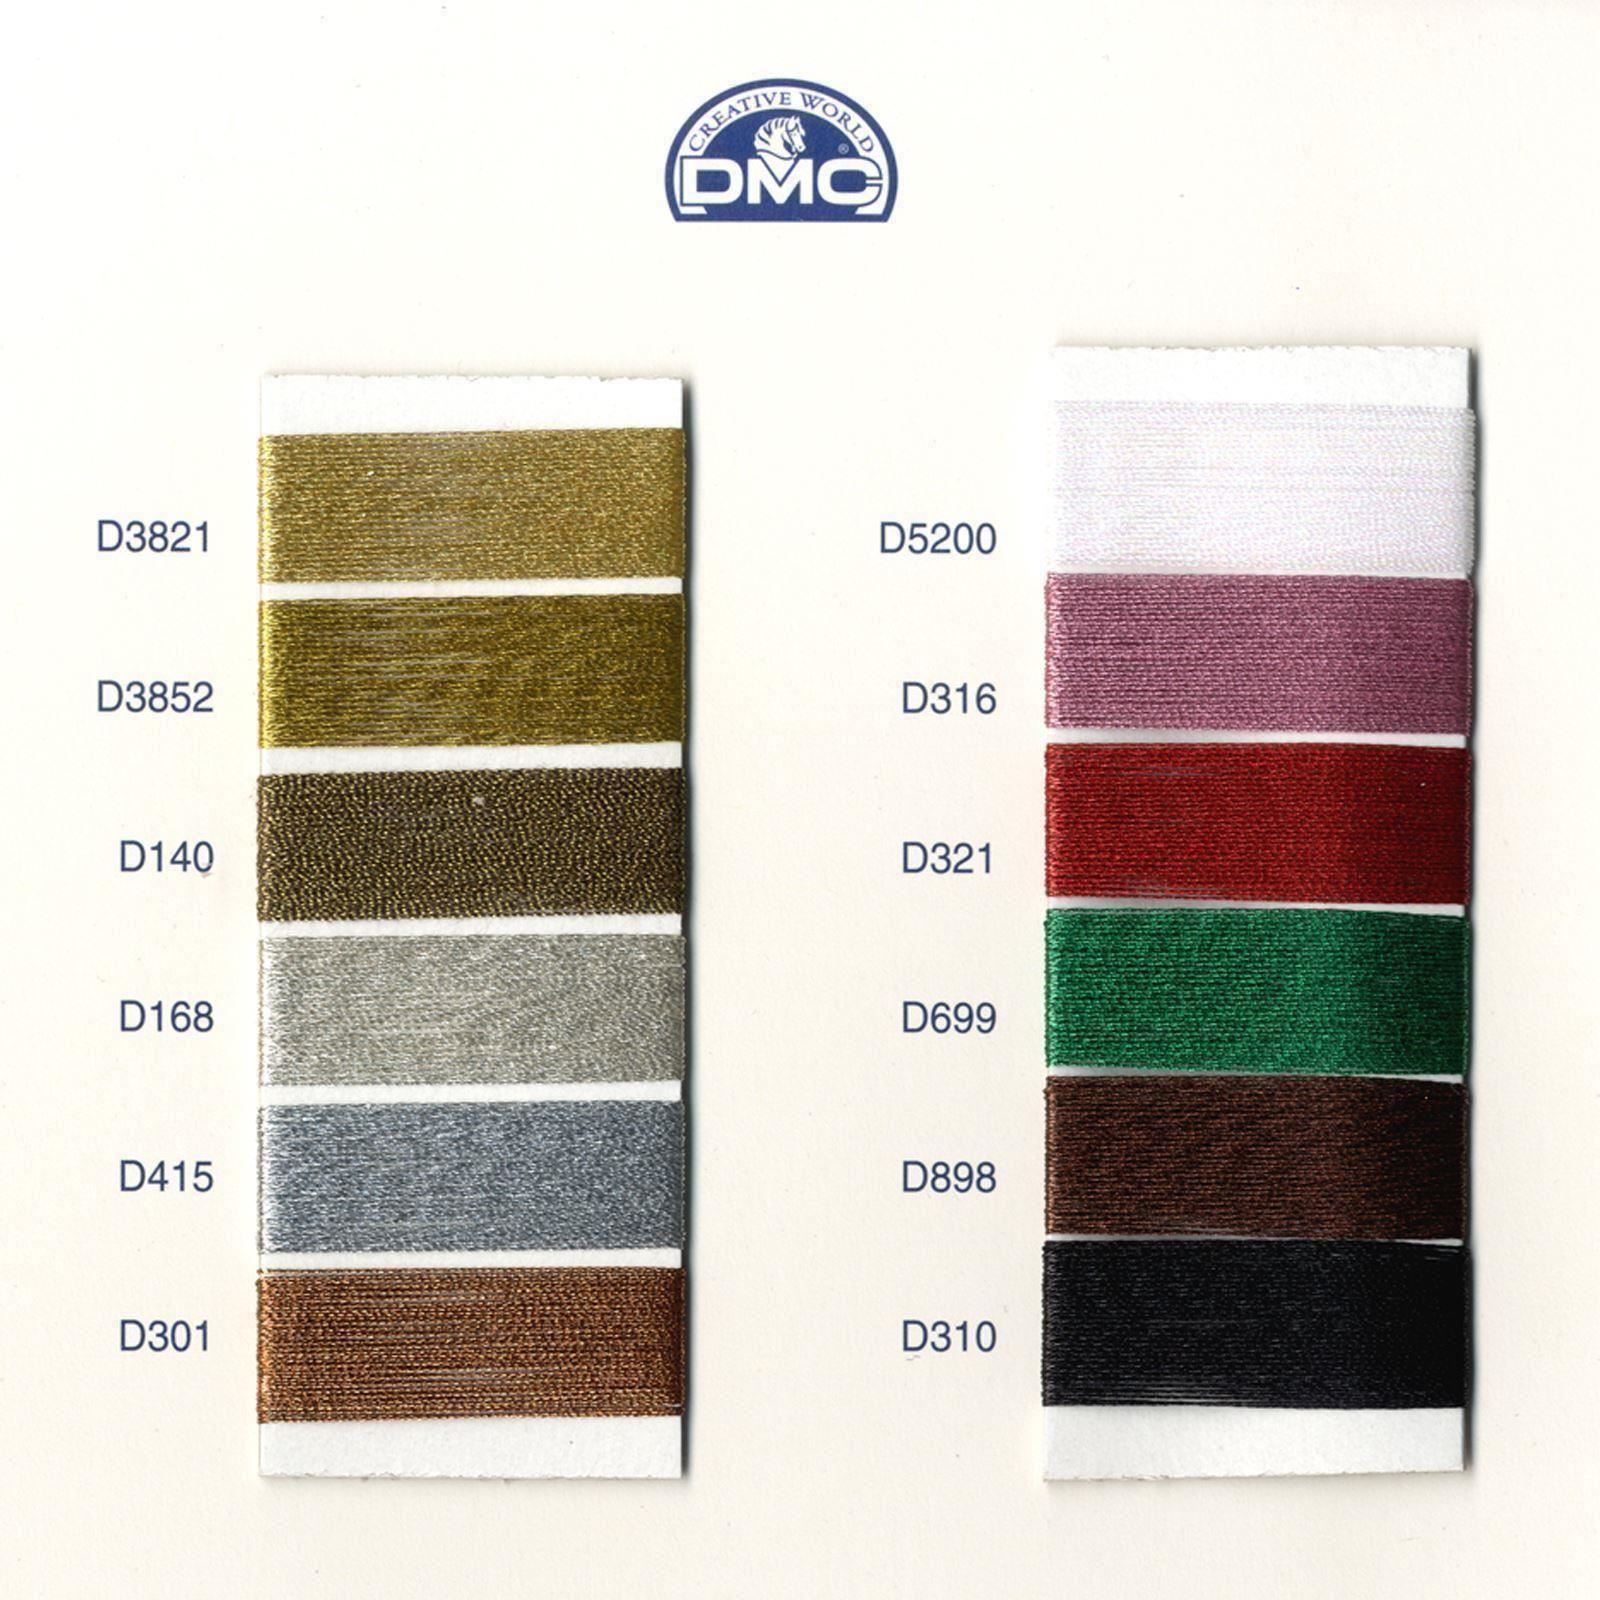 DMC-Diamant-Metallic-Embroidery-Thread-35m-Spool-Cross-Stitch thumbnail 25